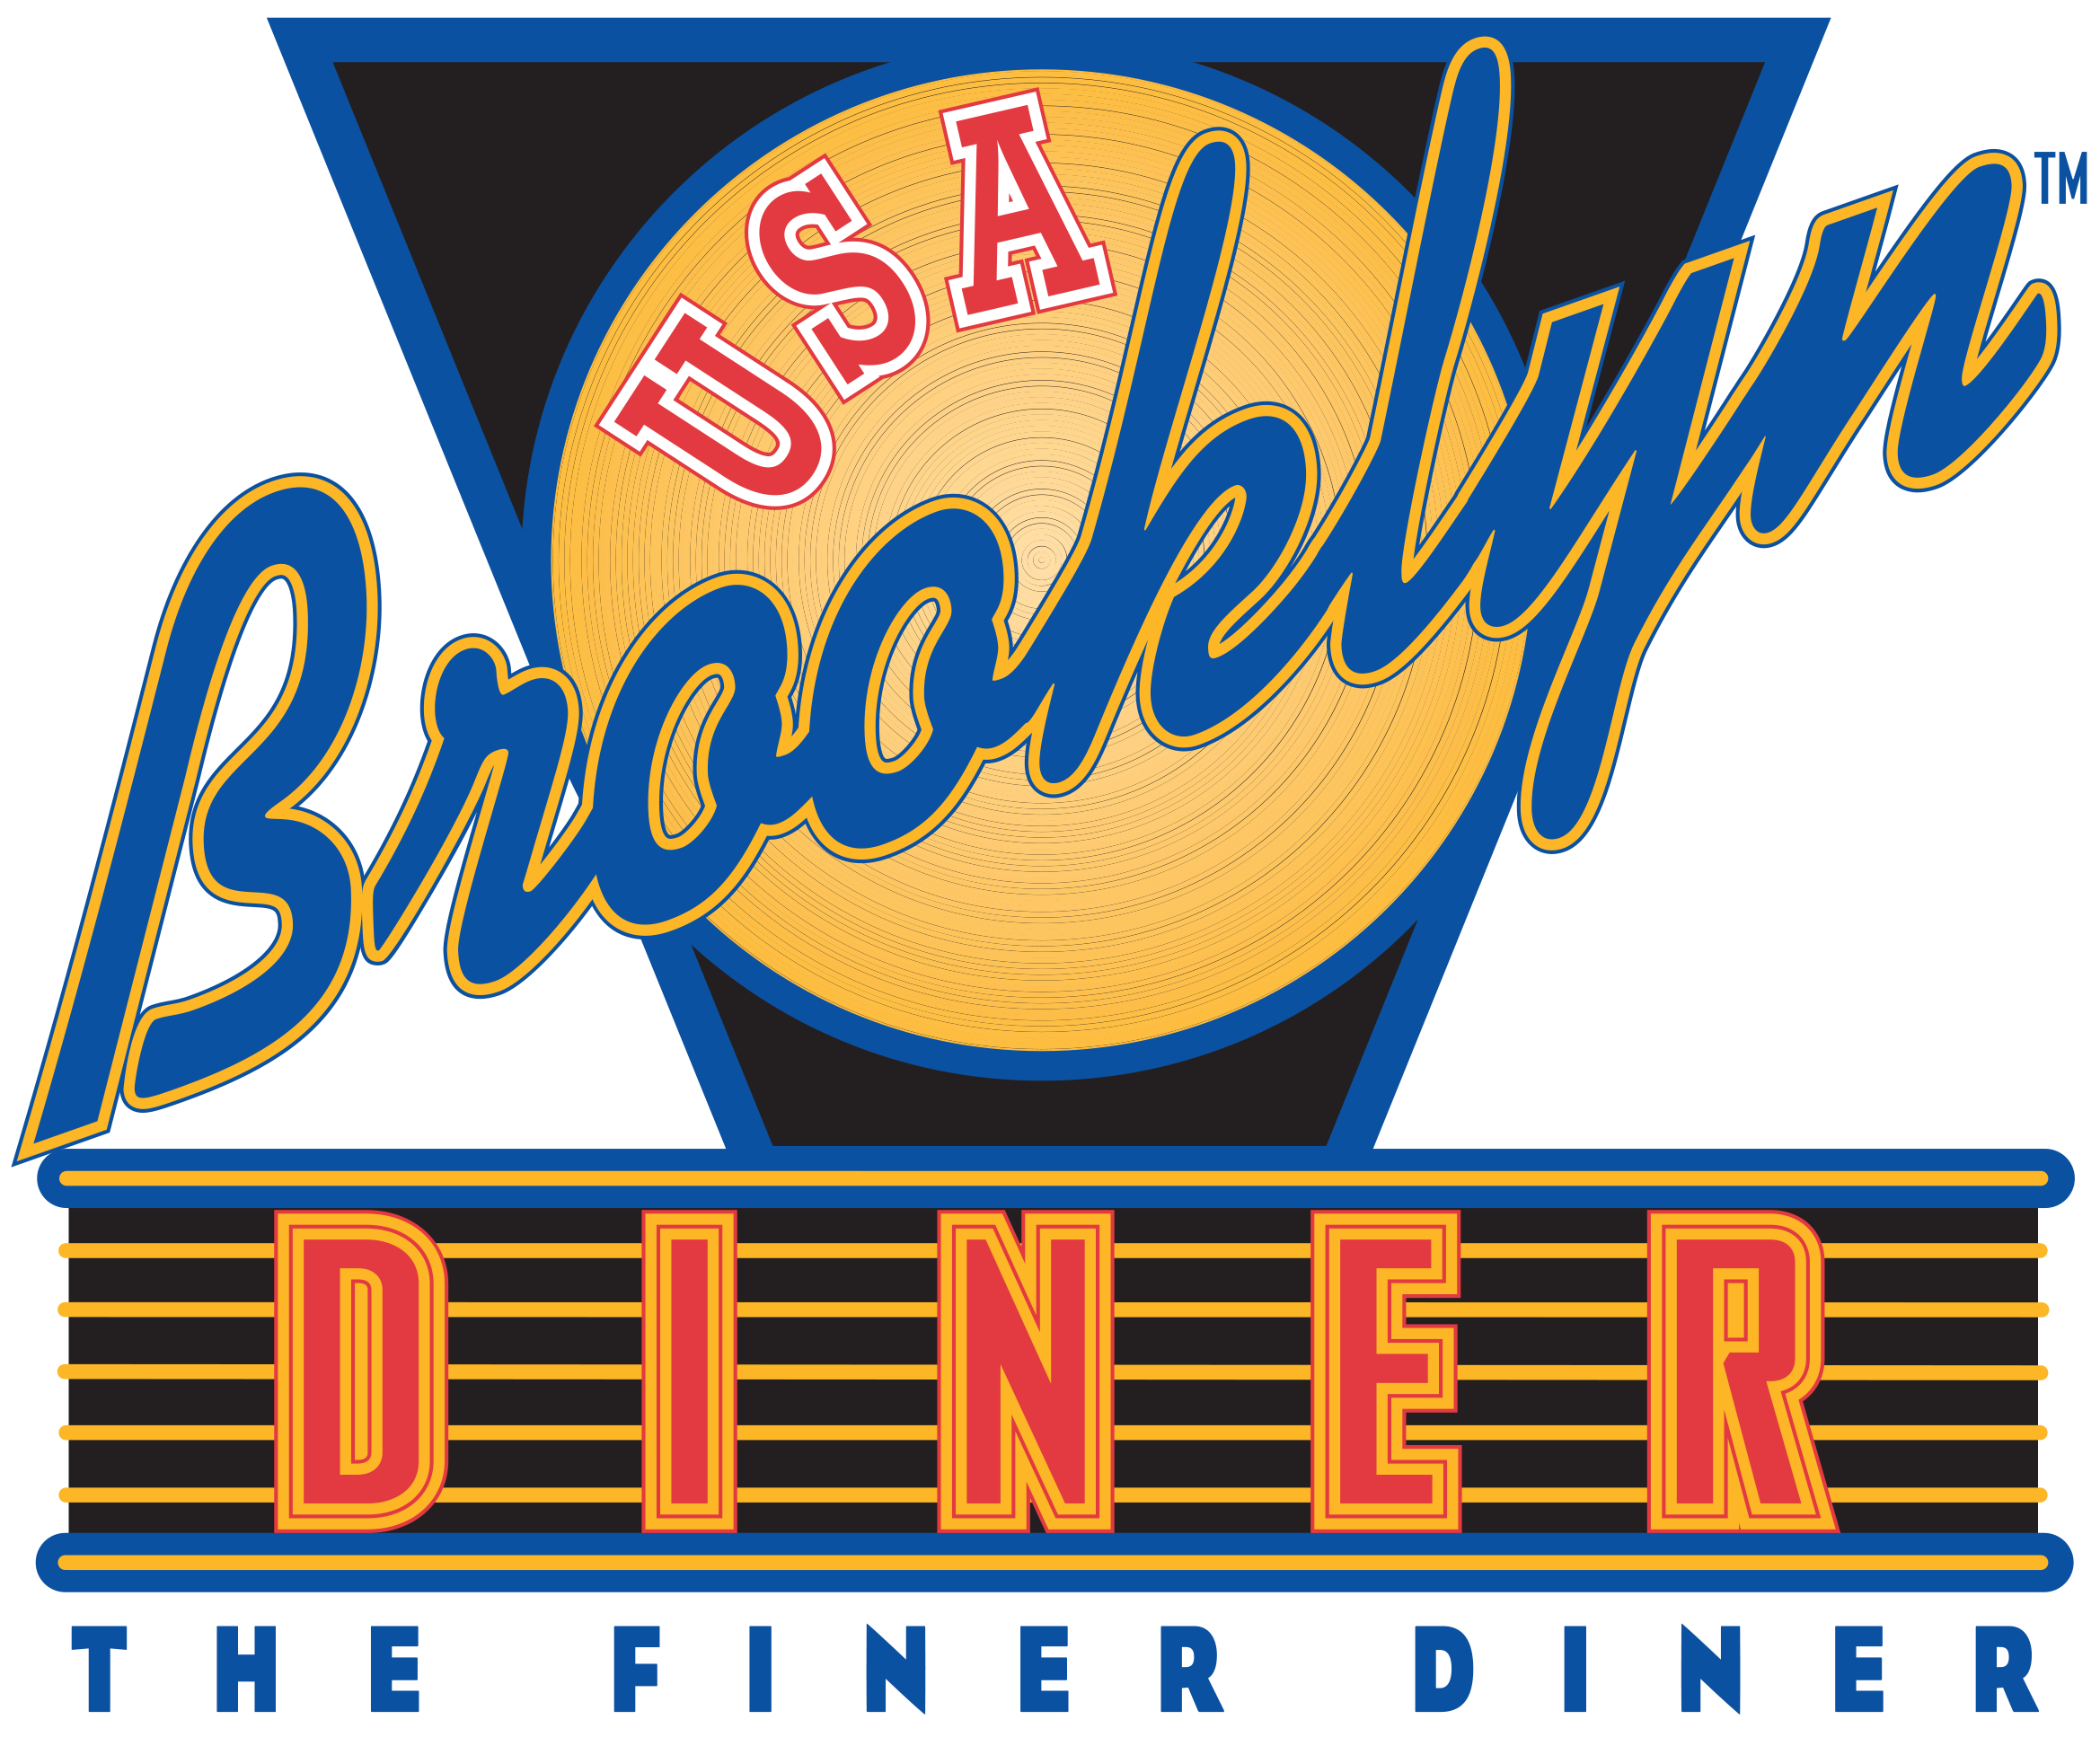 Brooklyn Diner Home